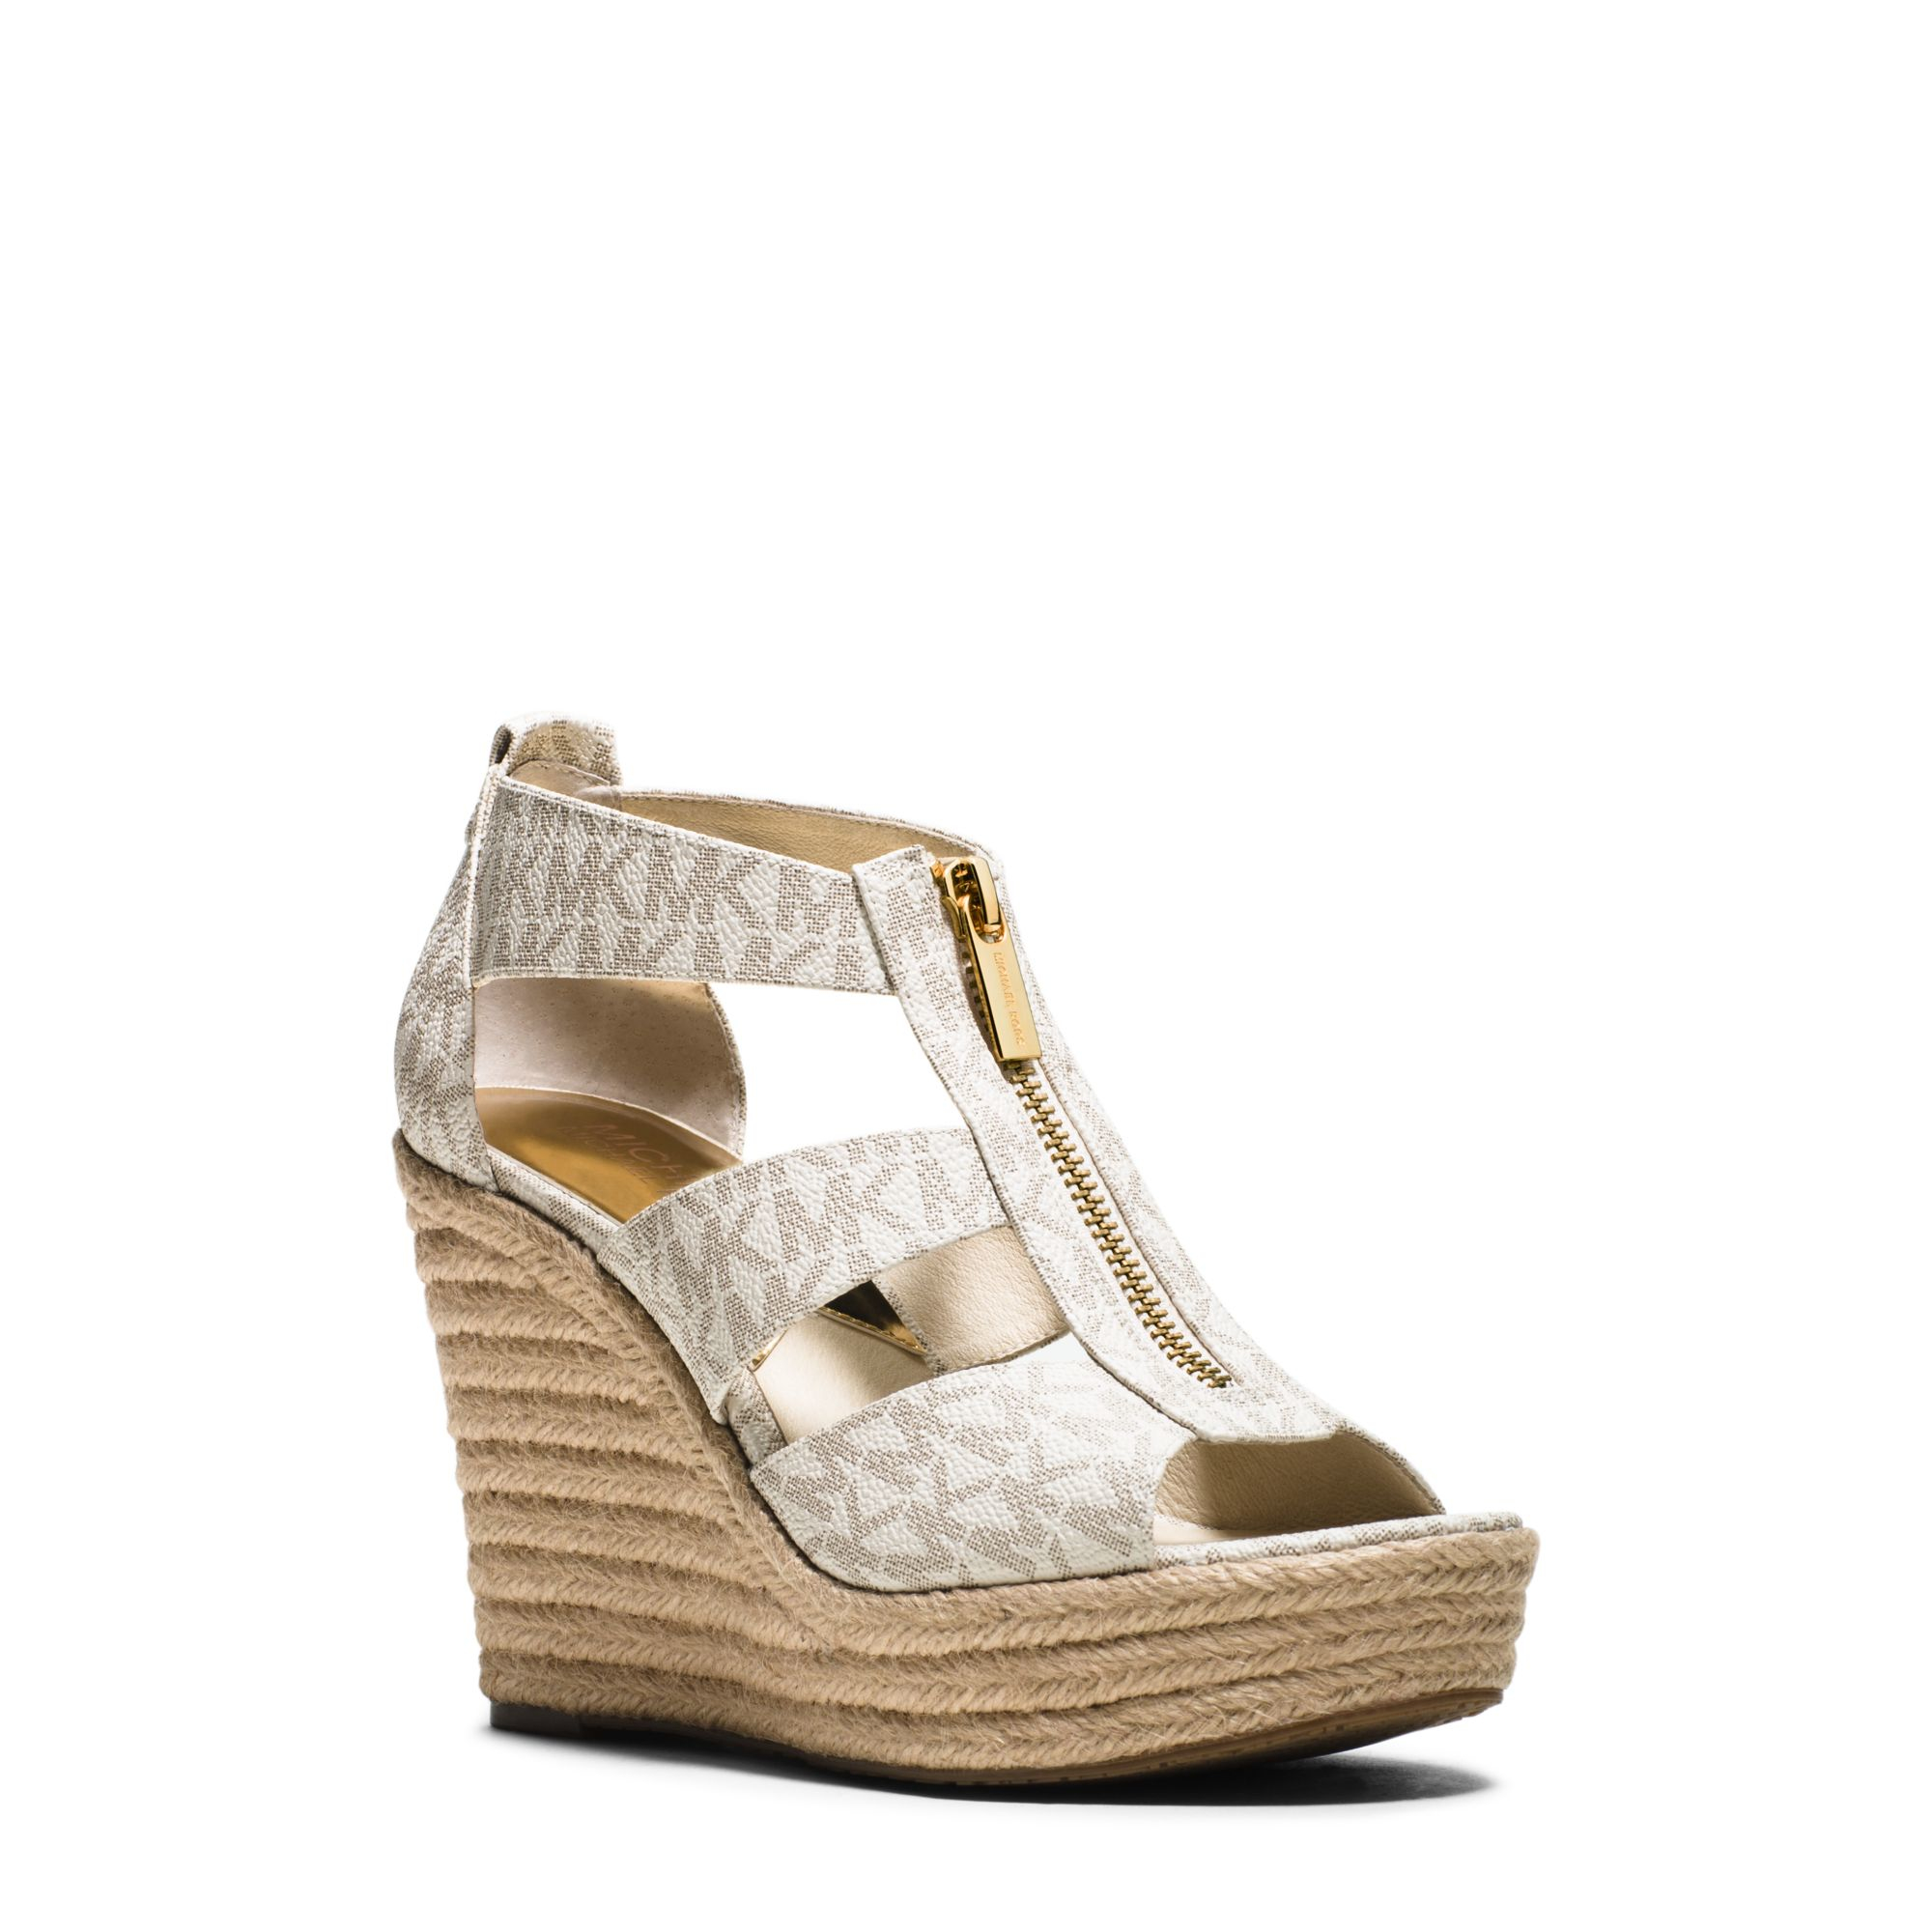 c1cdf47d98f1 Lyst - Michael Kors Damita Platform Wedge Sandals in White